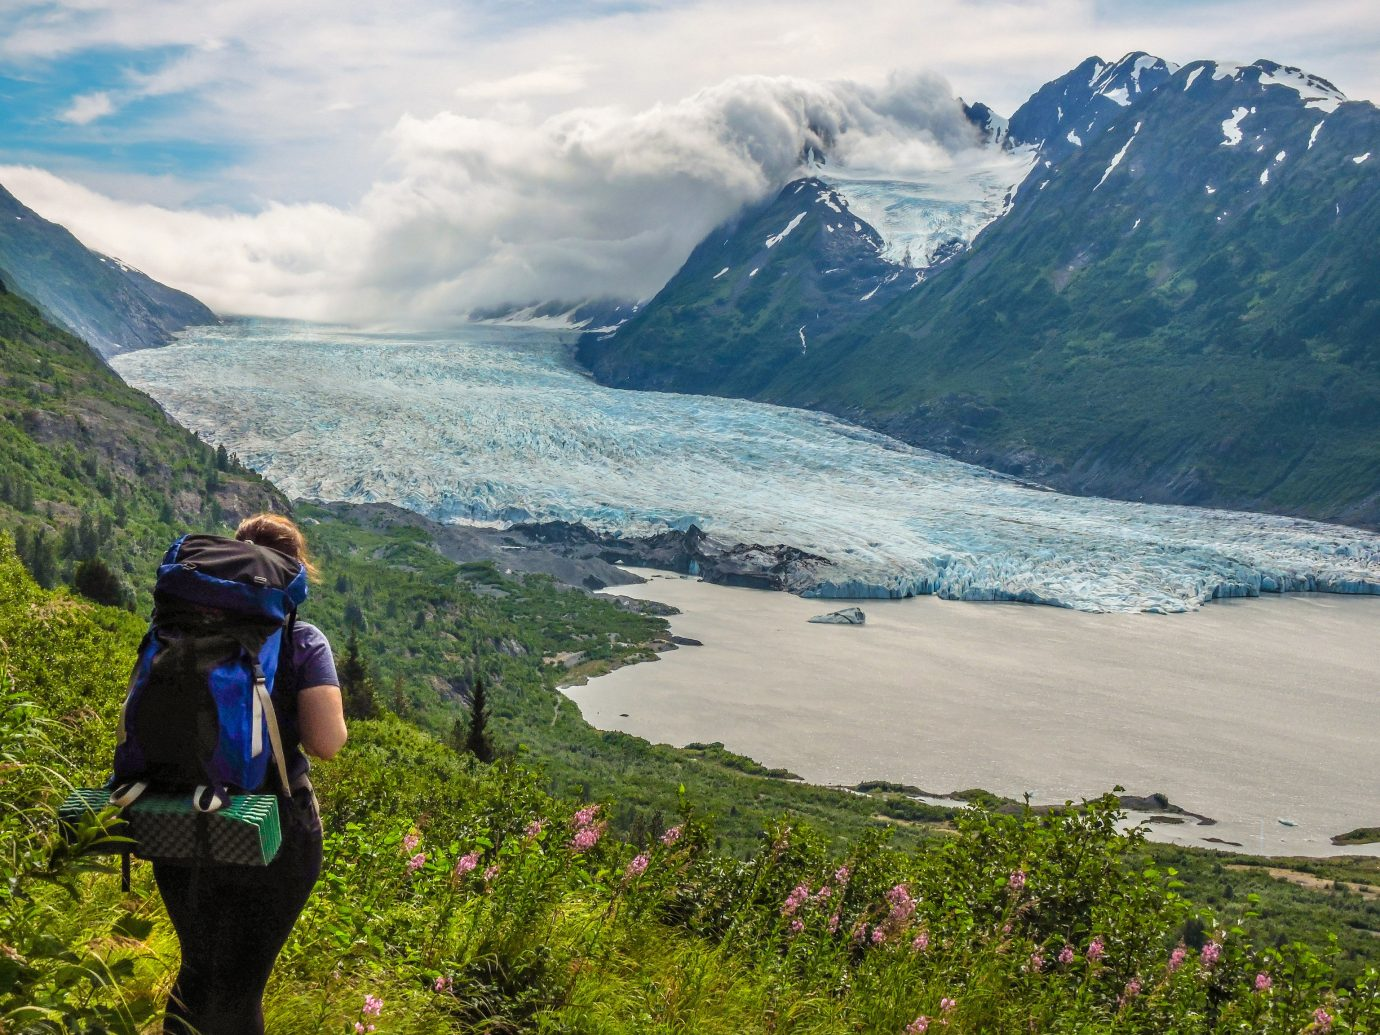 Outdoors + Adventure mountain outdoor sky Nature highland mountainous landforms landform geographical feature mountain range wilderness fjord fell vacation loch walking Adventure alps Lake glacial landform hiking glacier backpacking ridge plateau mountain pass